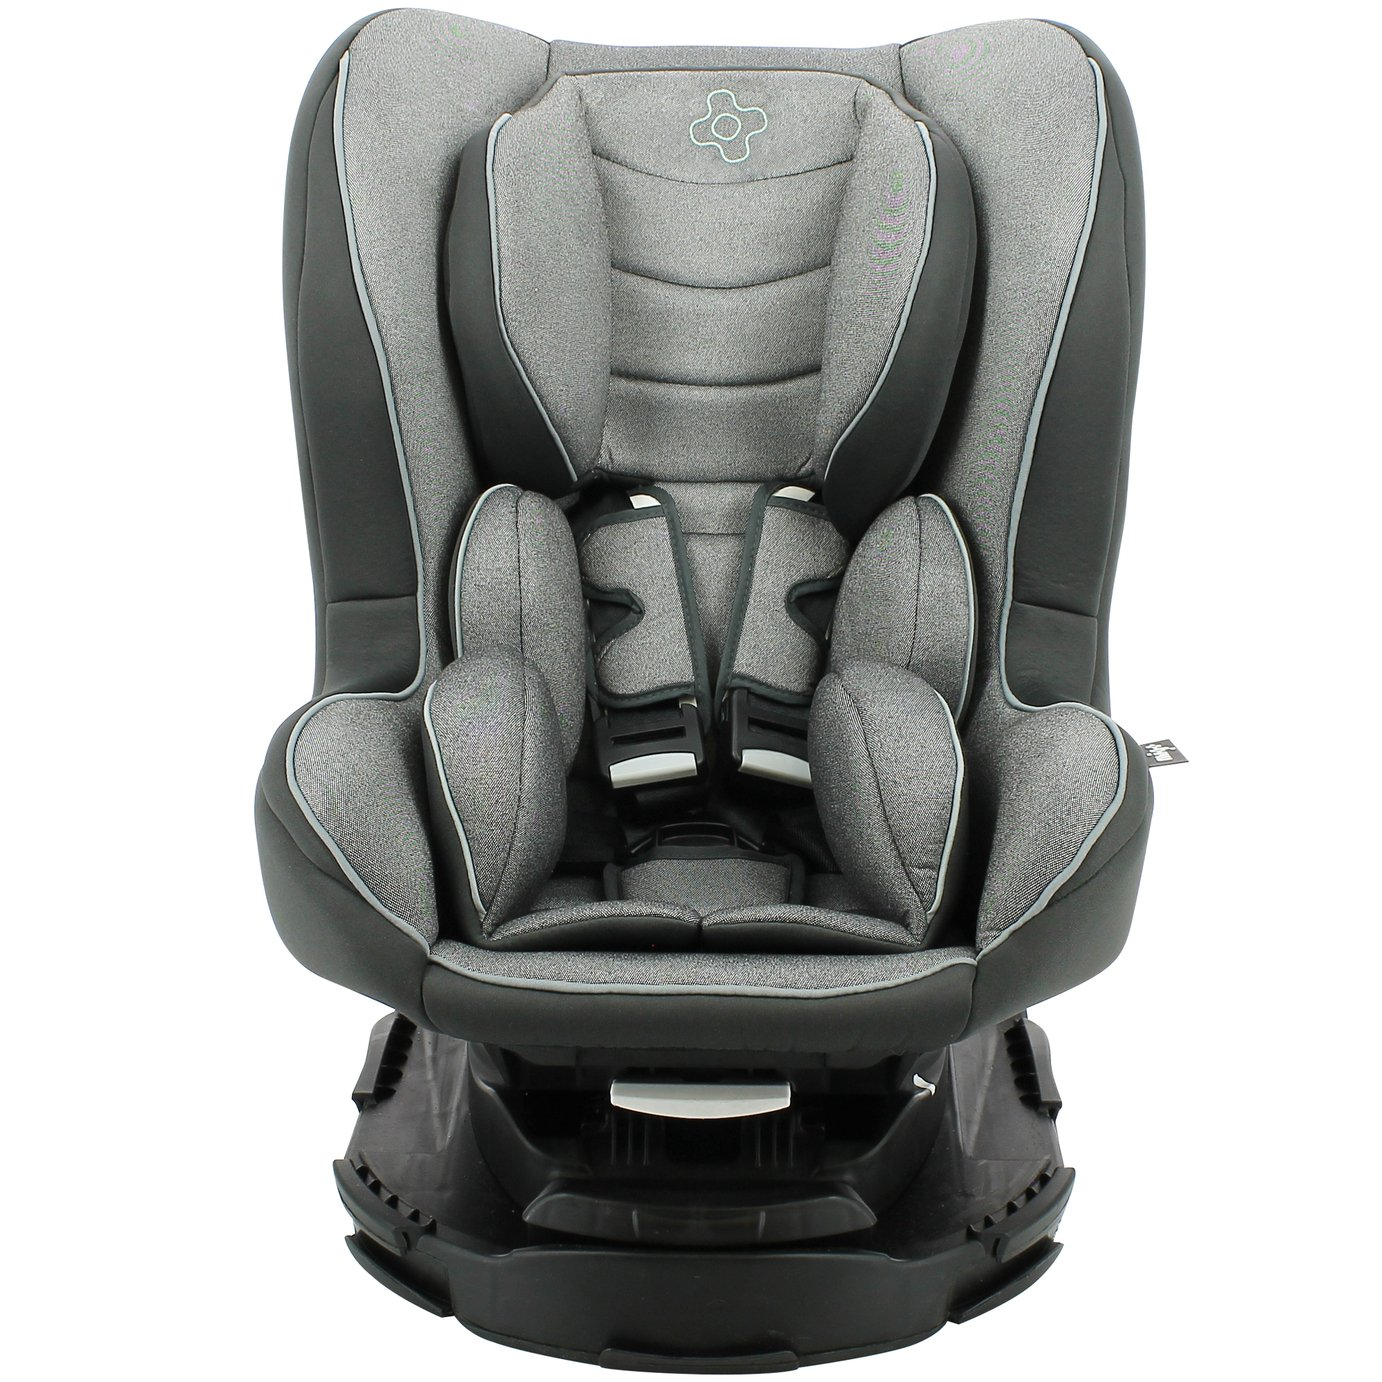 Migo Titan Platimun Group 0+/1 Car Seat - Grey